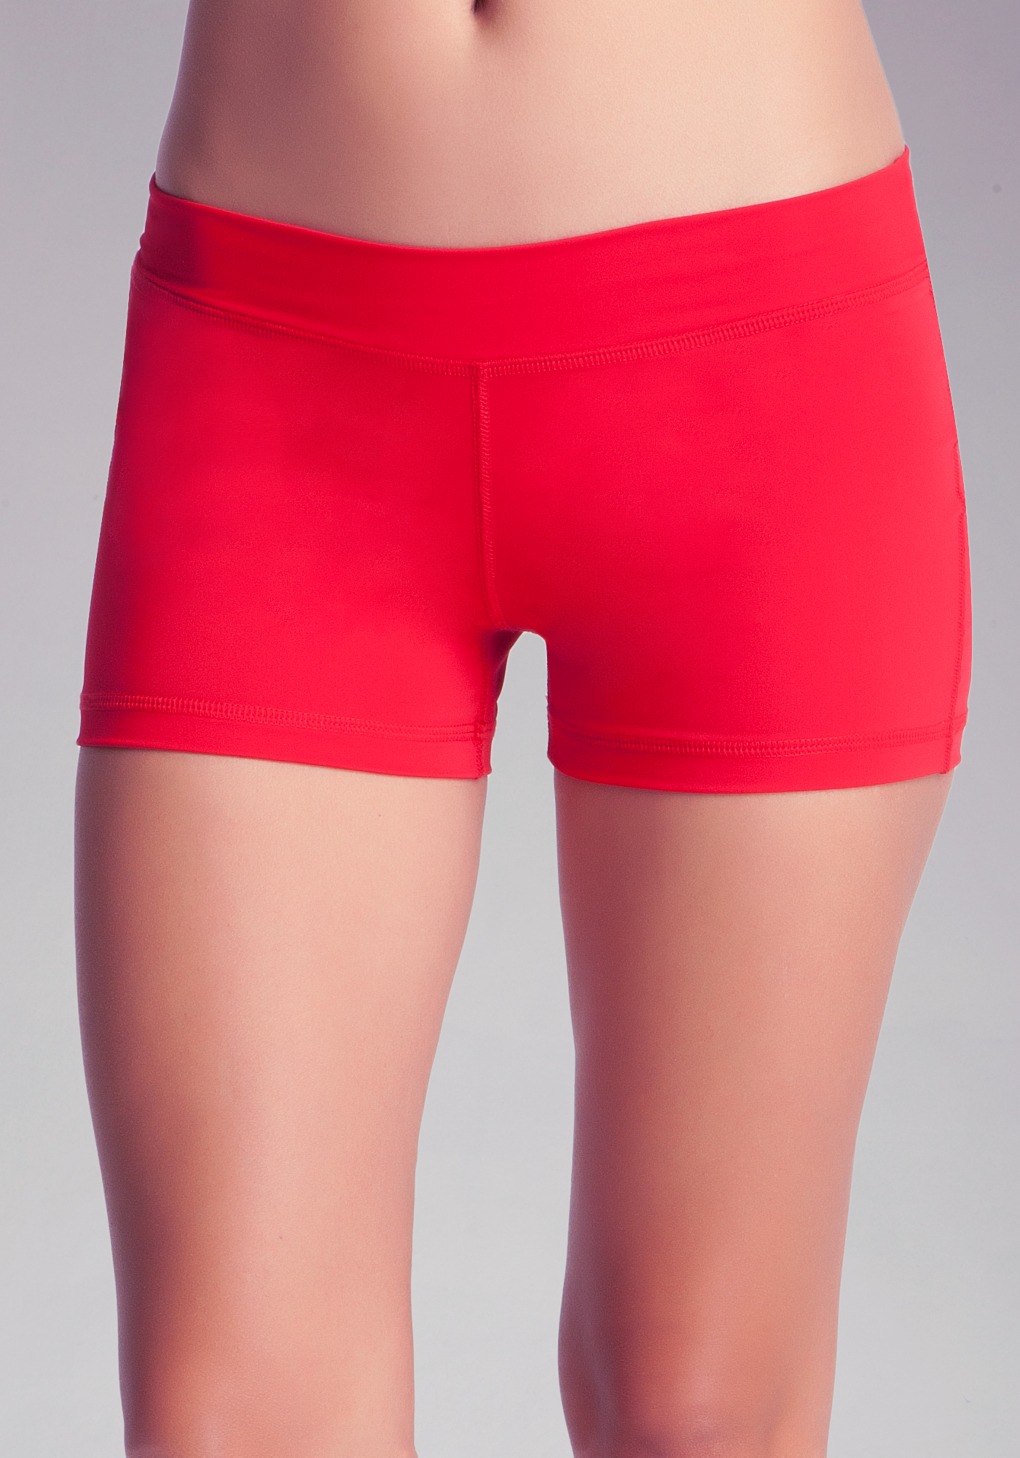 Bebe Boy Shorts in Red | Lyst